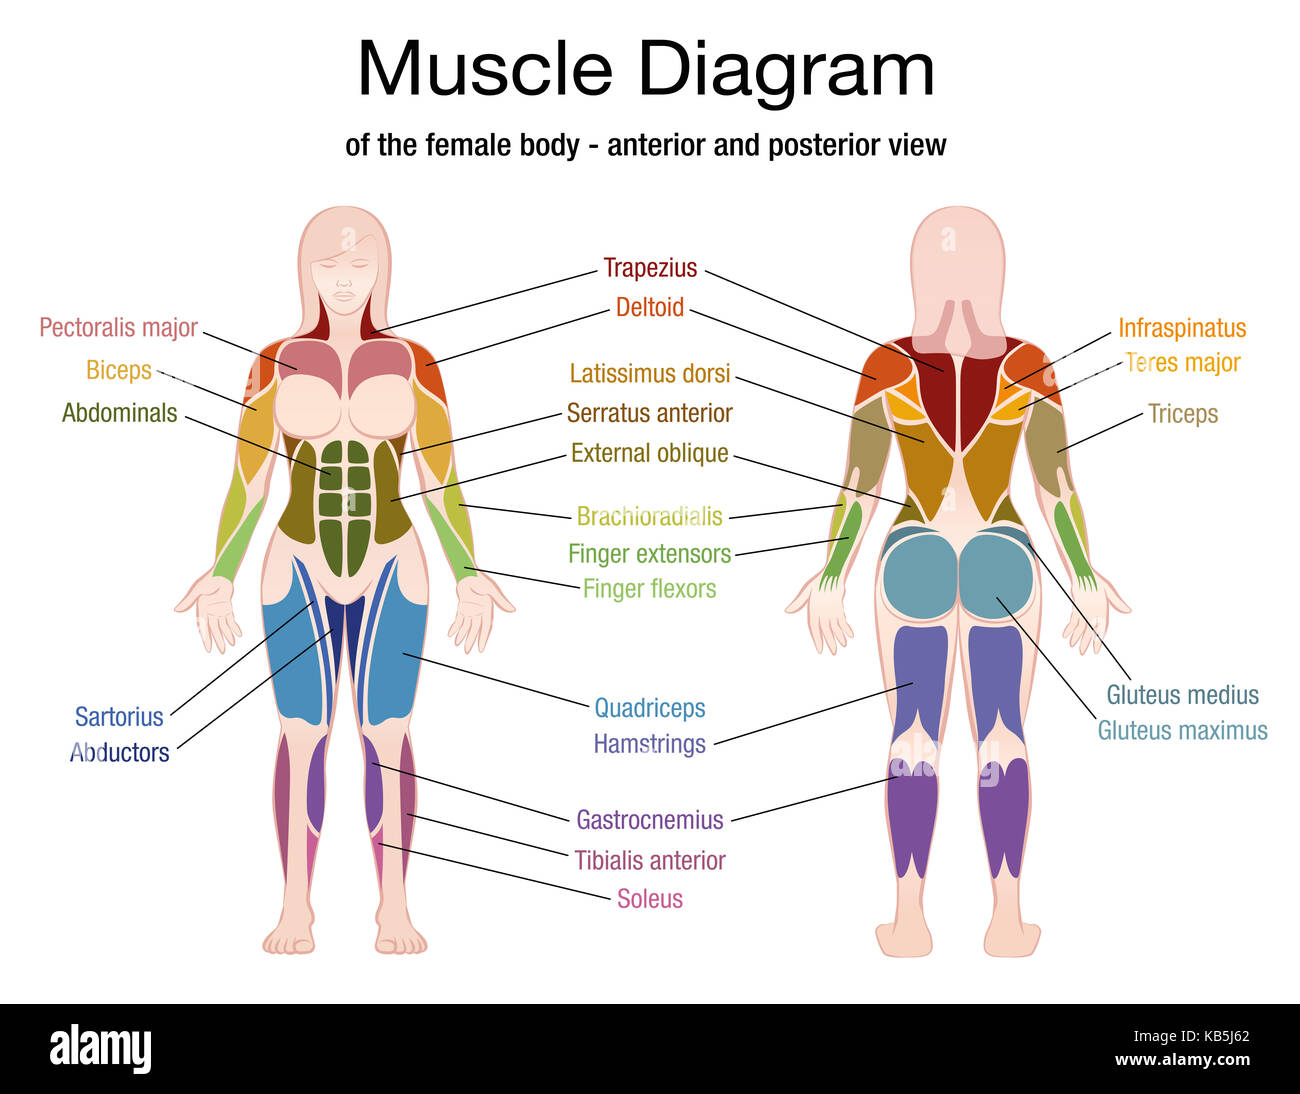 female anatomy diagram stock photos  u0026 female anatomy